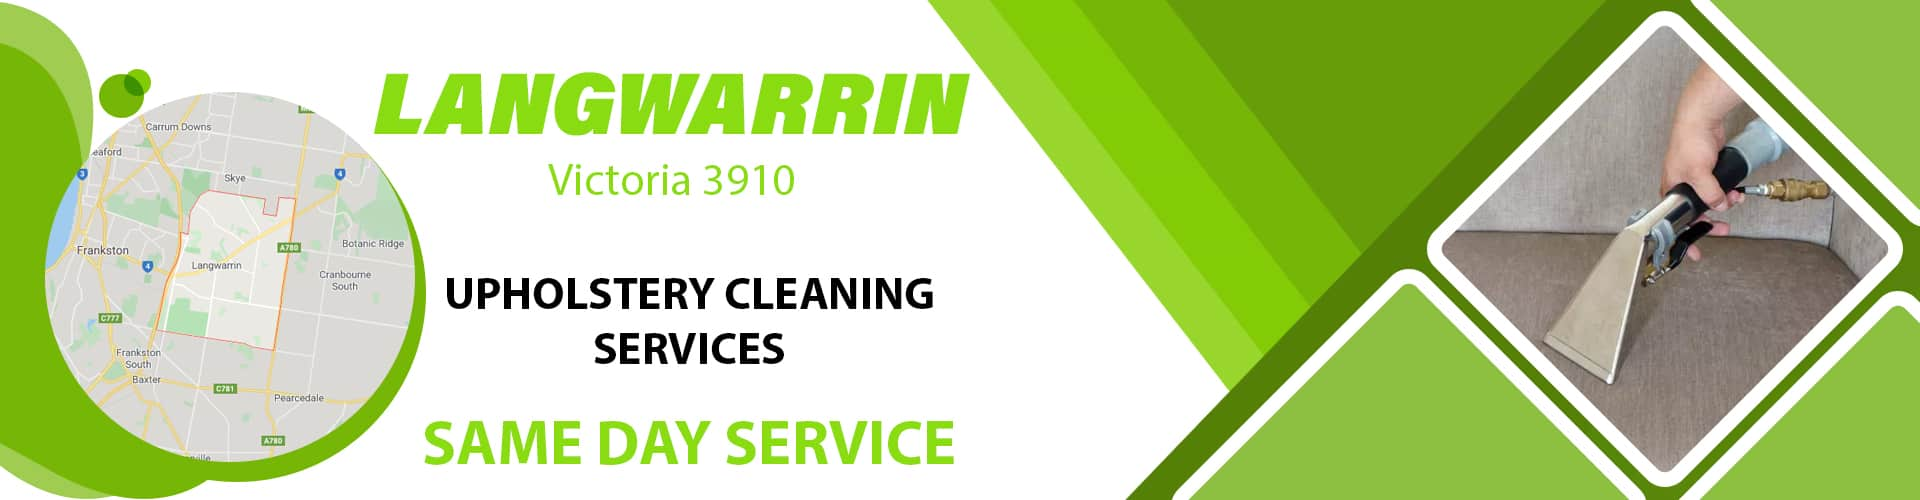 Upholstery Cleaning Langwarrin